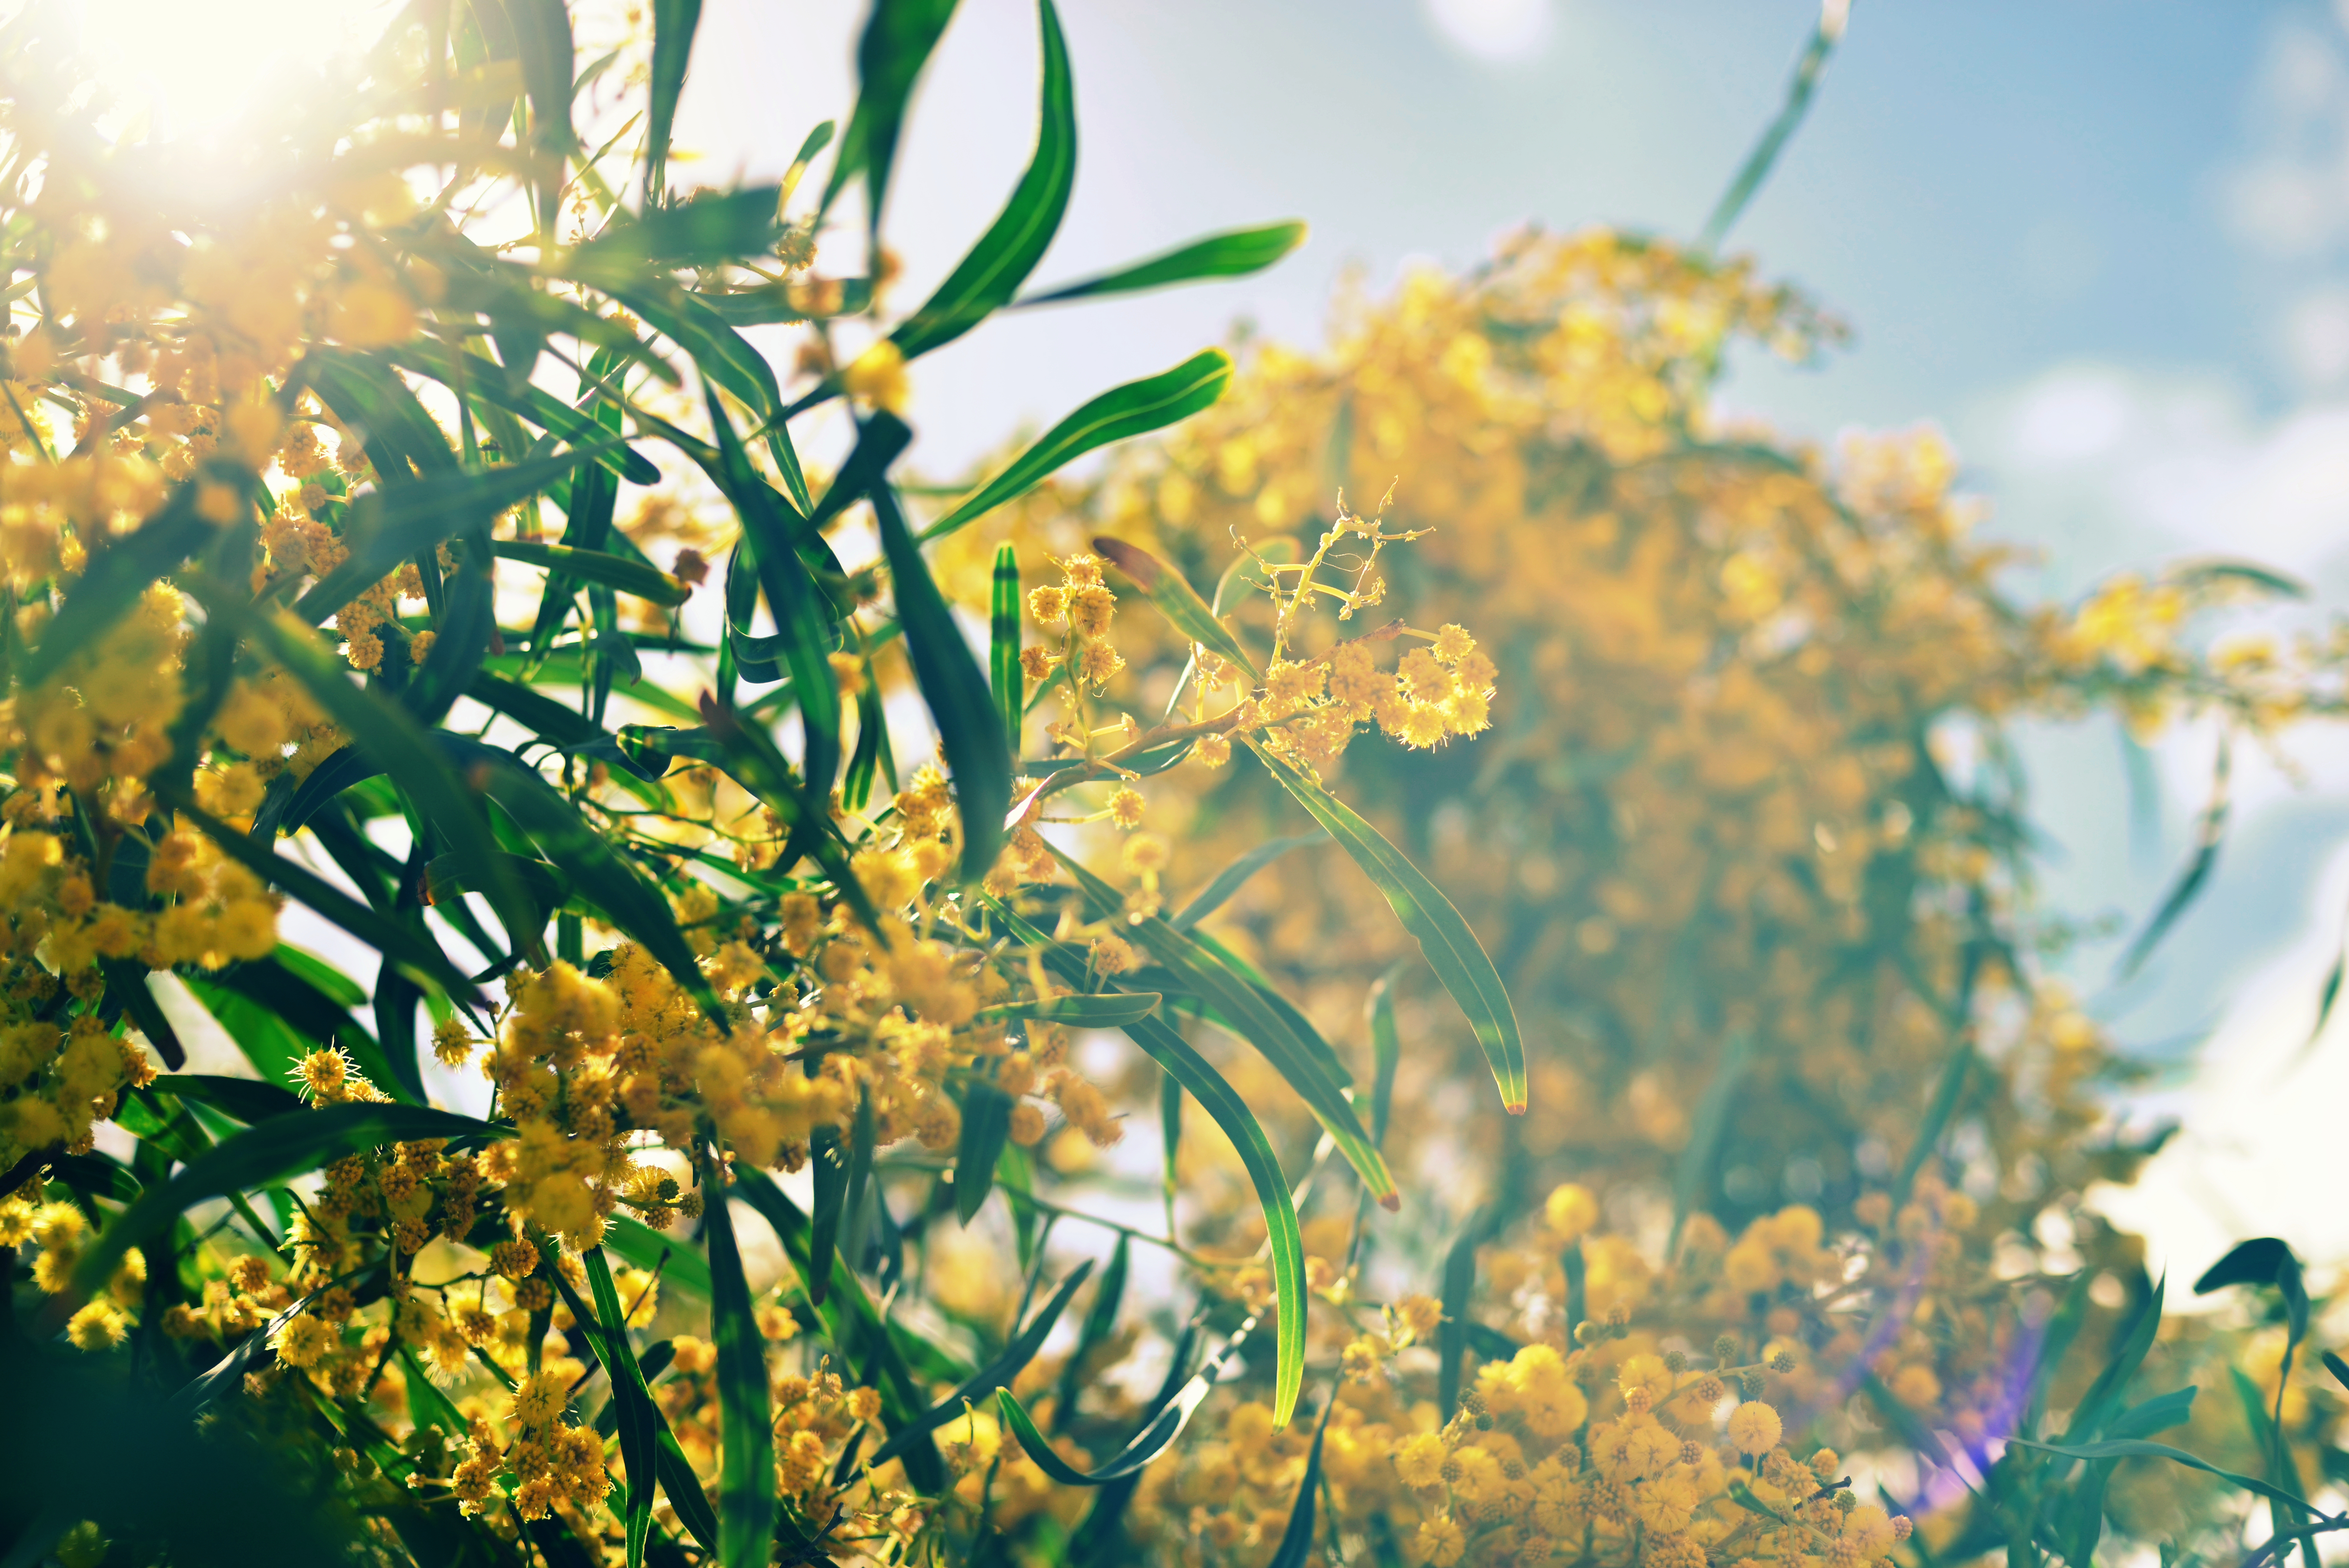 How to Grow a Mimosa Tree From a Seed | Home Guides | SF Gate